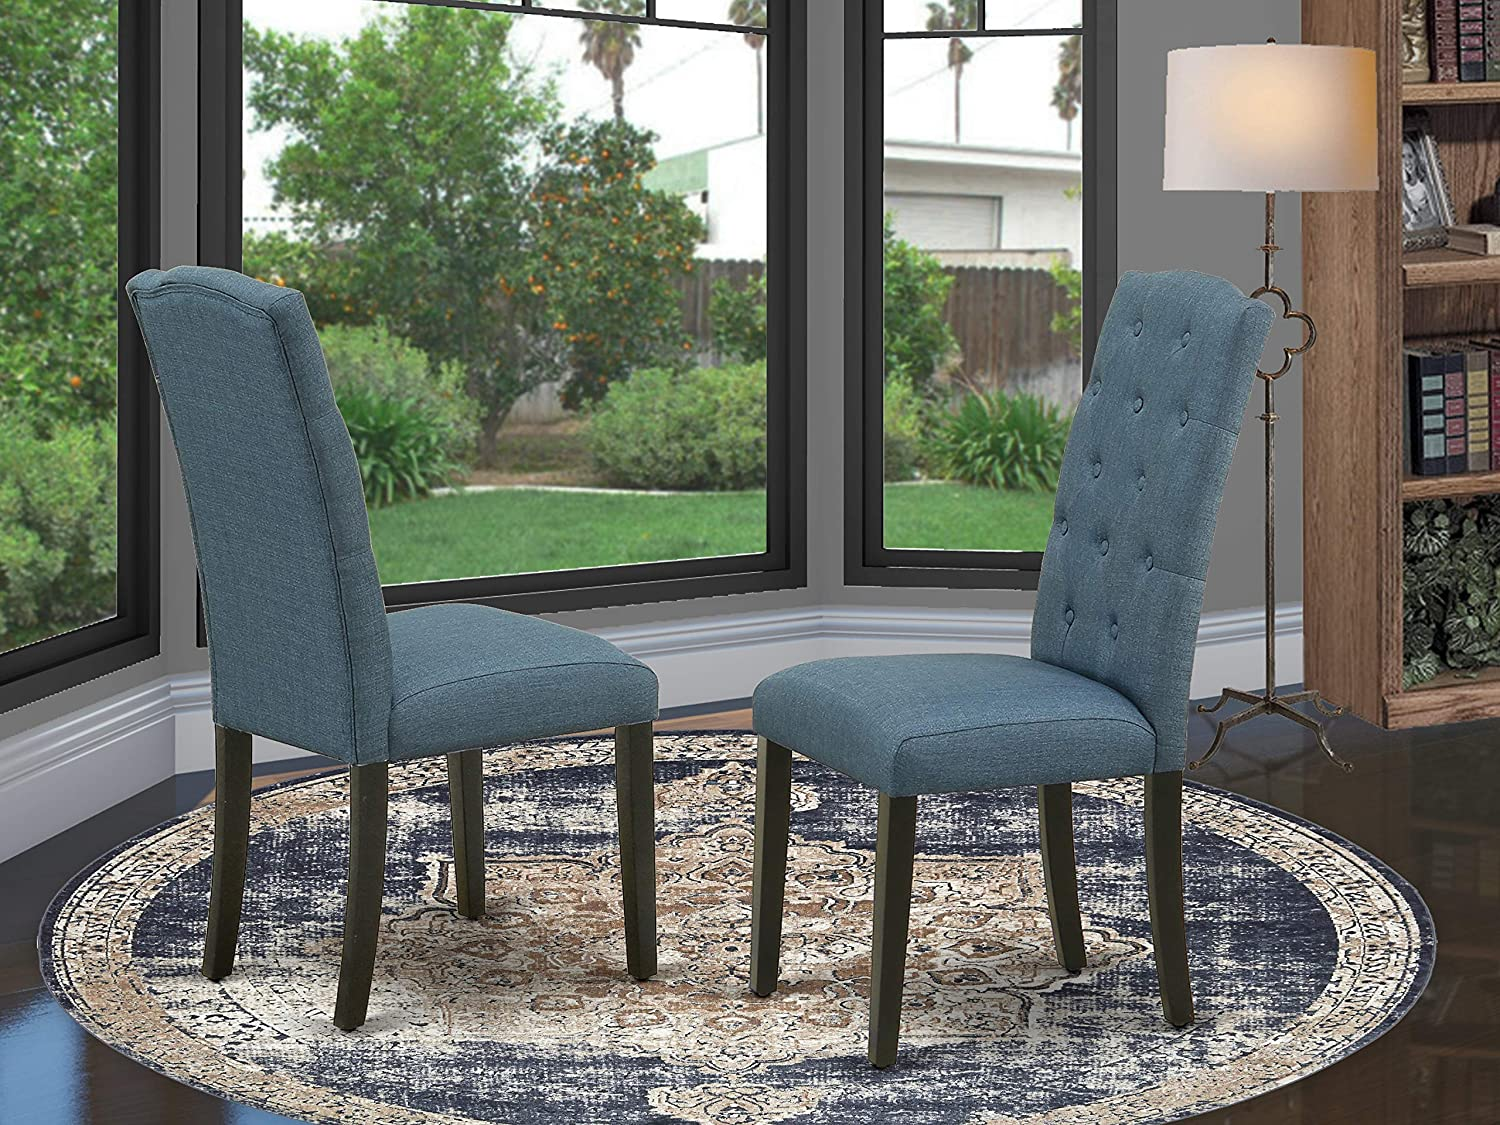 East West Furniture Celina Dining Chairs - Blue Color Linen Fabric, Wooden Black Finish Legs Modern Parsons Dining Room Chairs - Set of Two